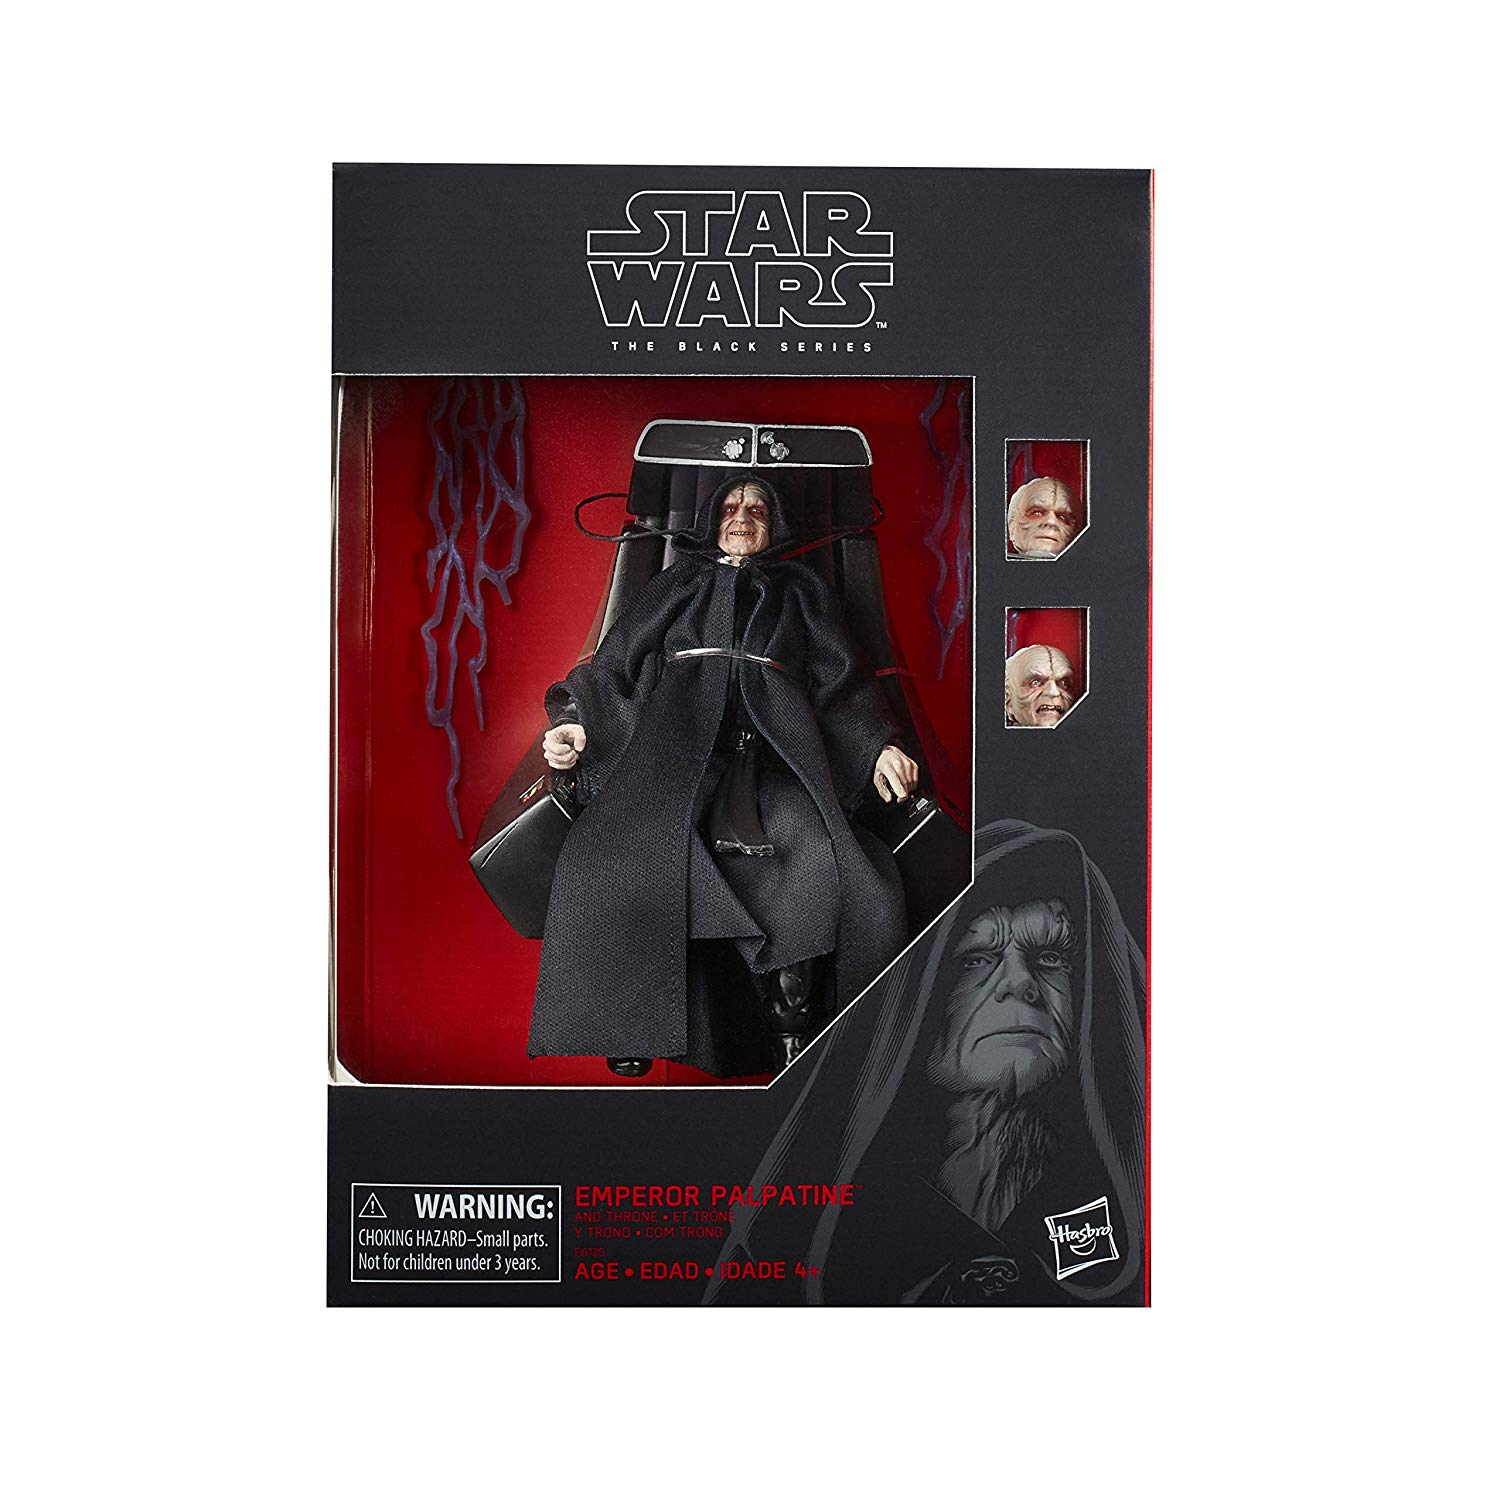 Star Wars The Black Series 6″ Amazon Exclusive Emperor Palpatine With Throne Figure Pre-Orders